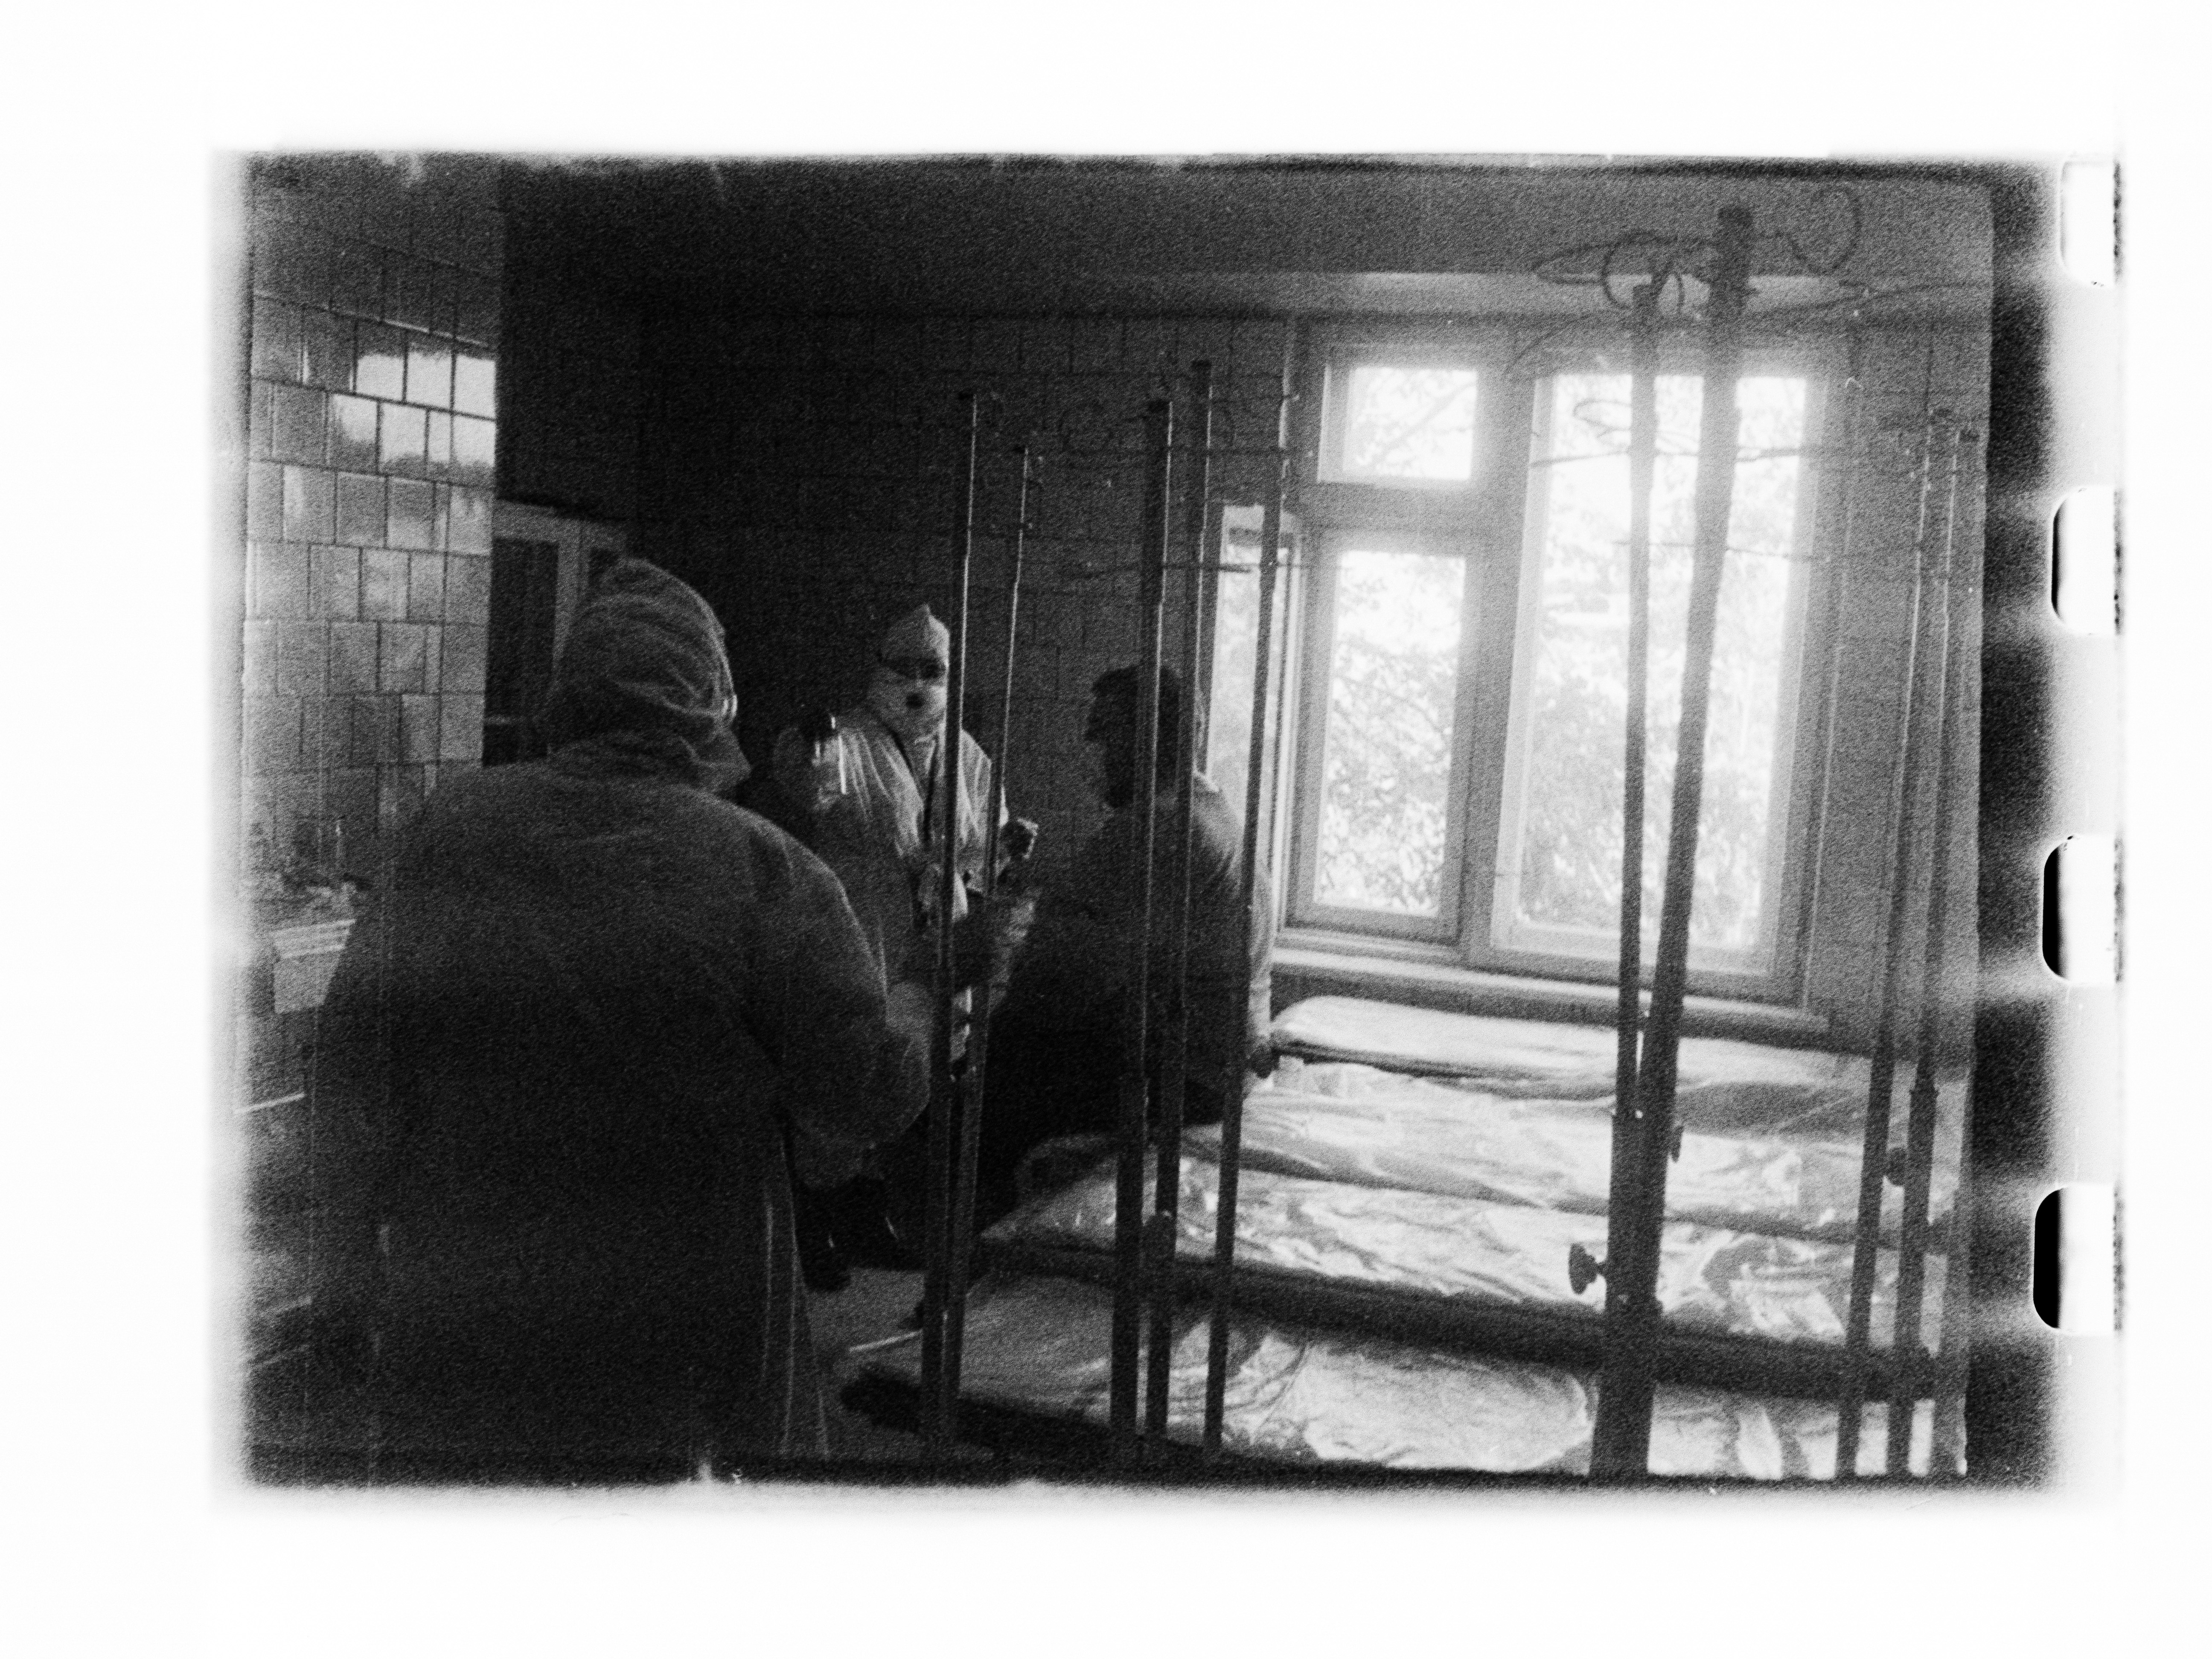 Patients leaving ward (Pic: Andrey Khludeyev)